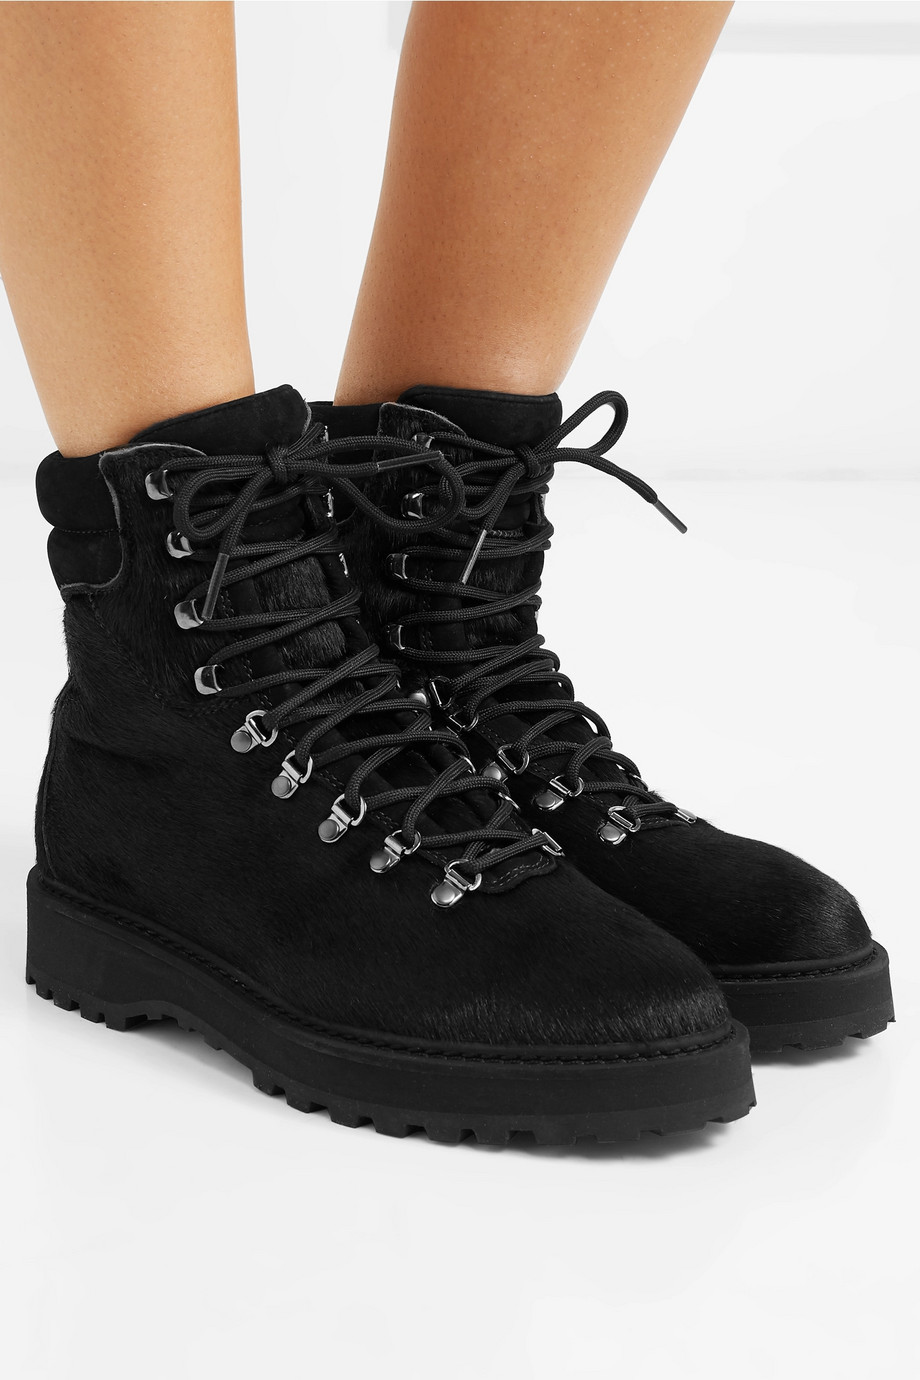 Ankle boots decorated Diemme buy Ankle boots decorated Diemme internet shop